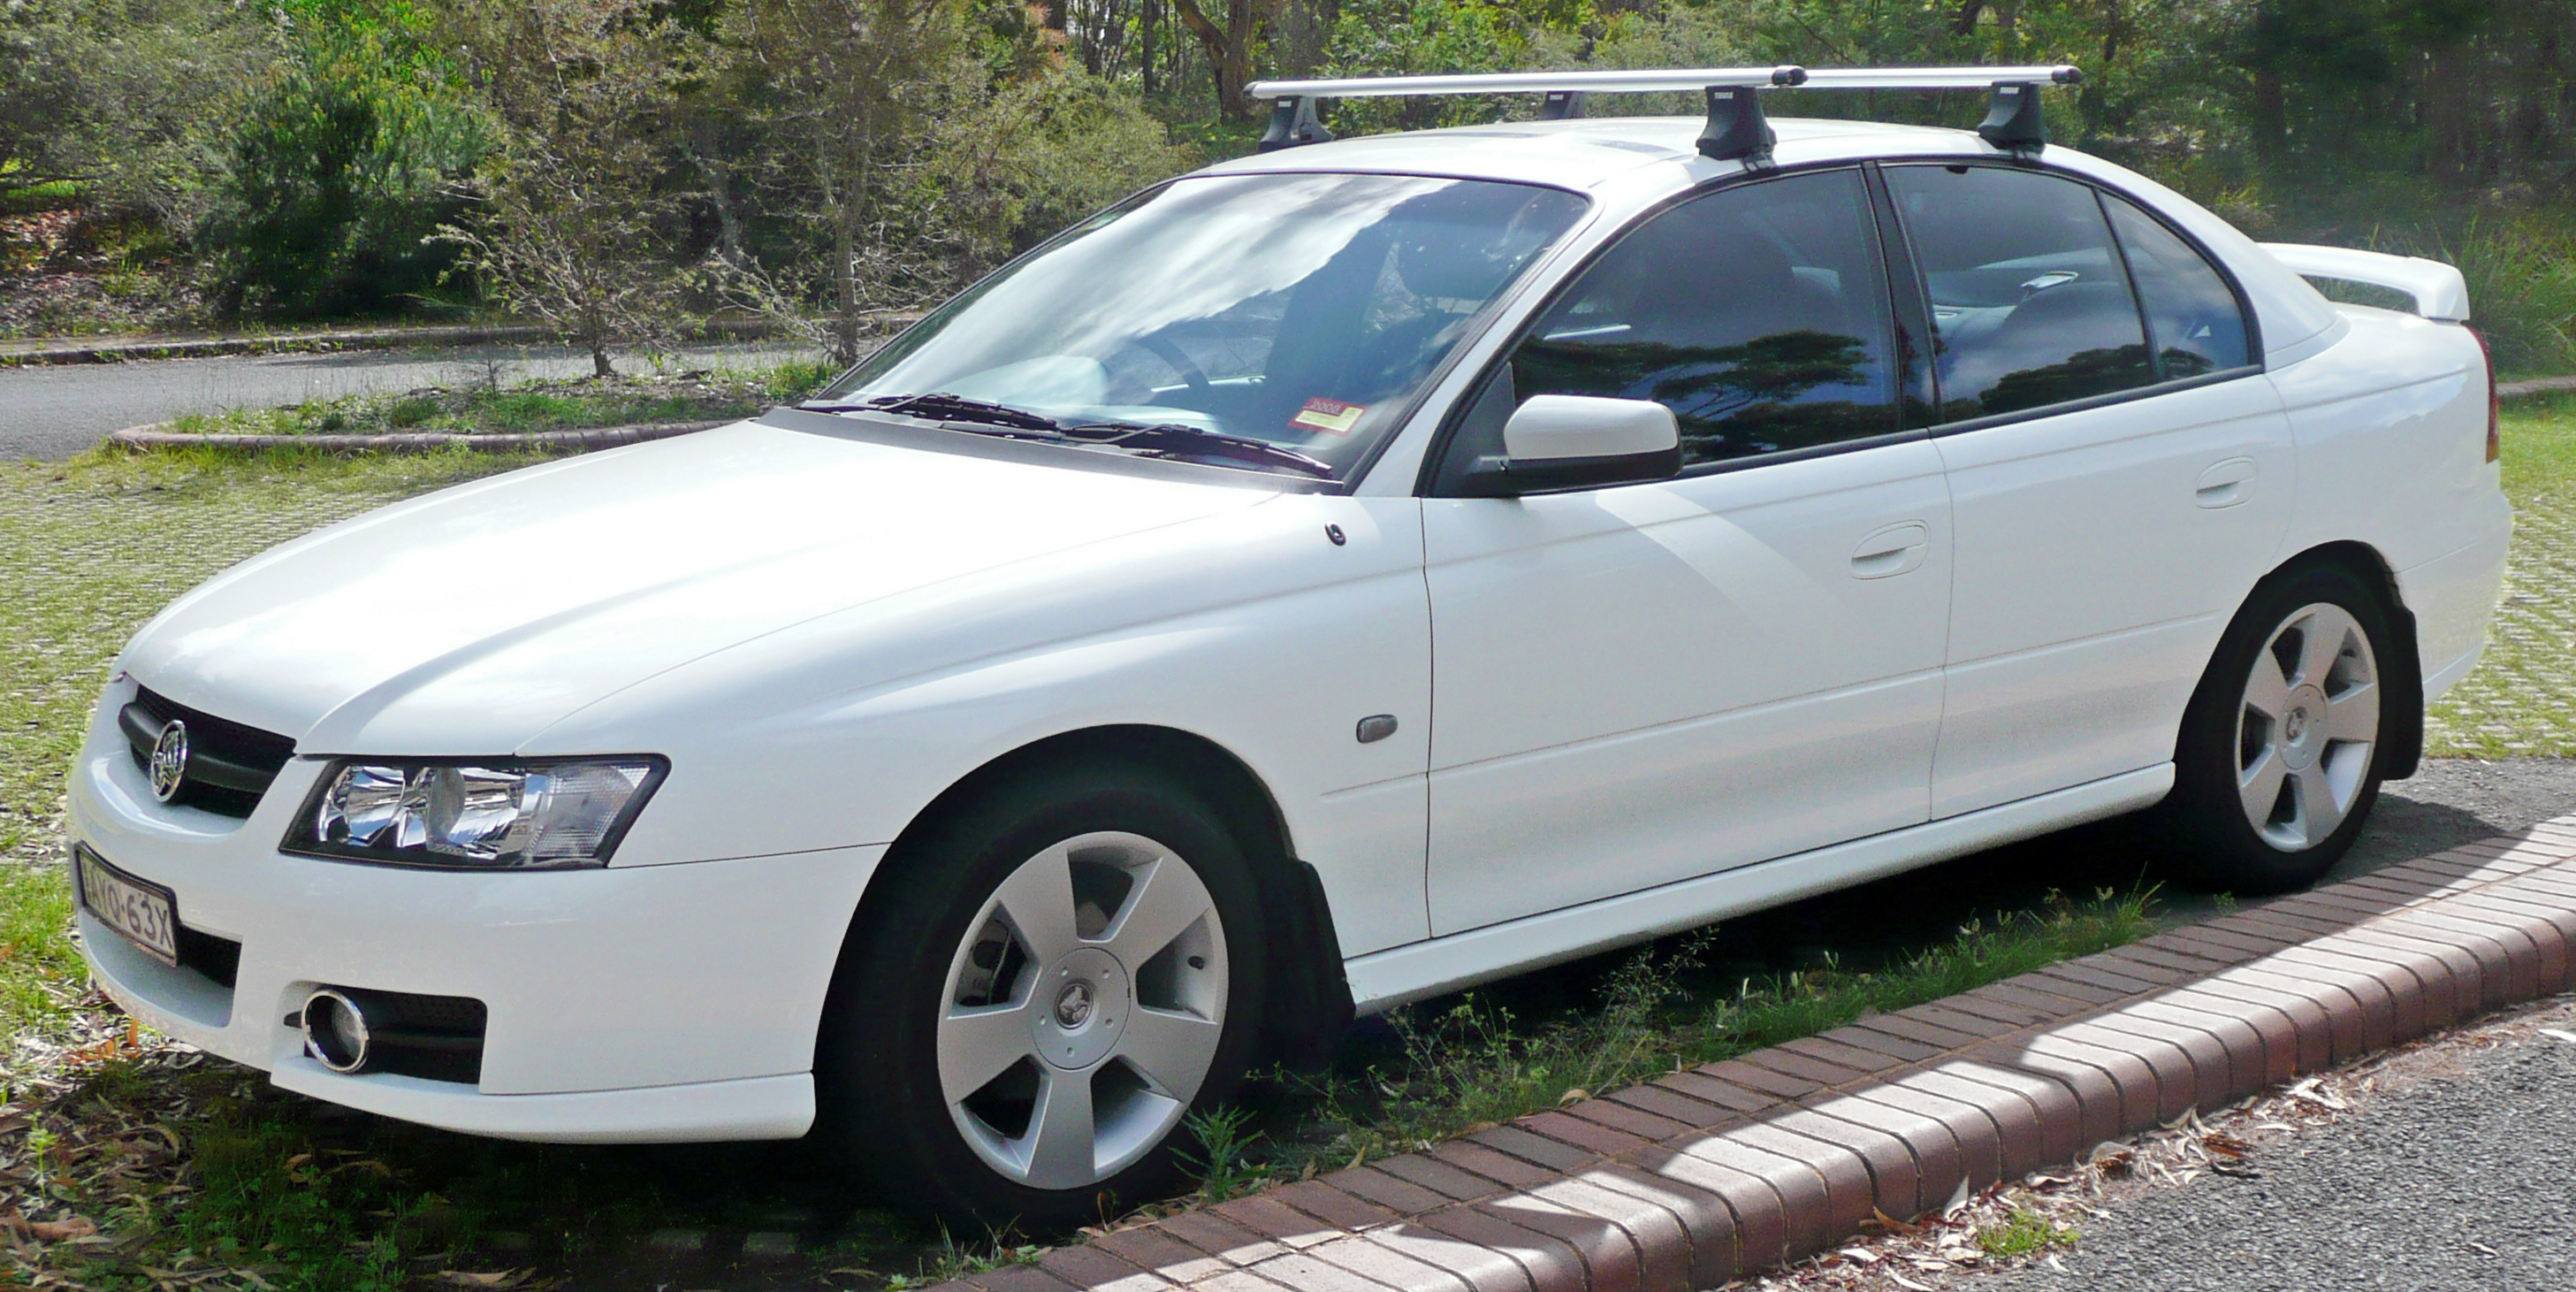 2006 Holden Commodore #1